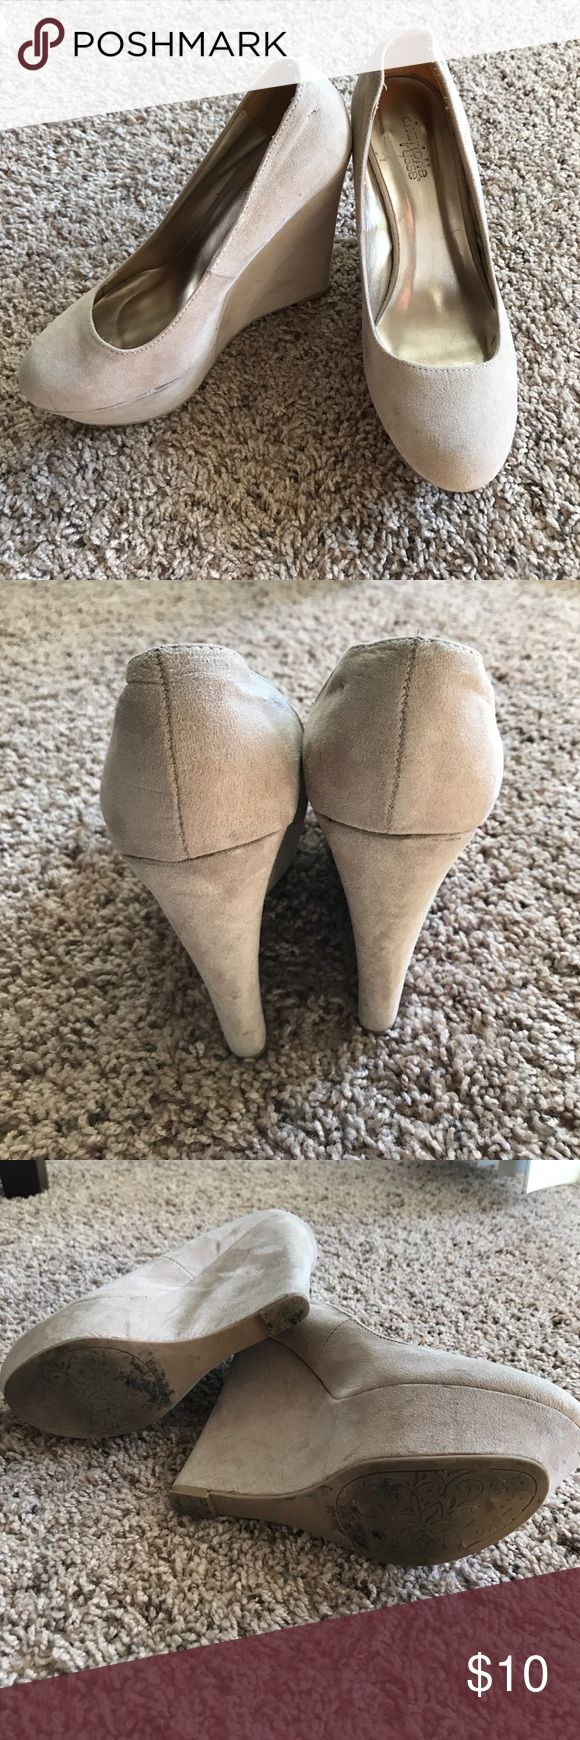 Cream wedges Cream wedges. A little worn but still sturdy! Wore them for dances a few times Charlotte Russe Shoes Wedges